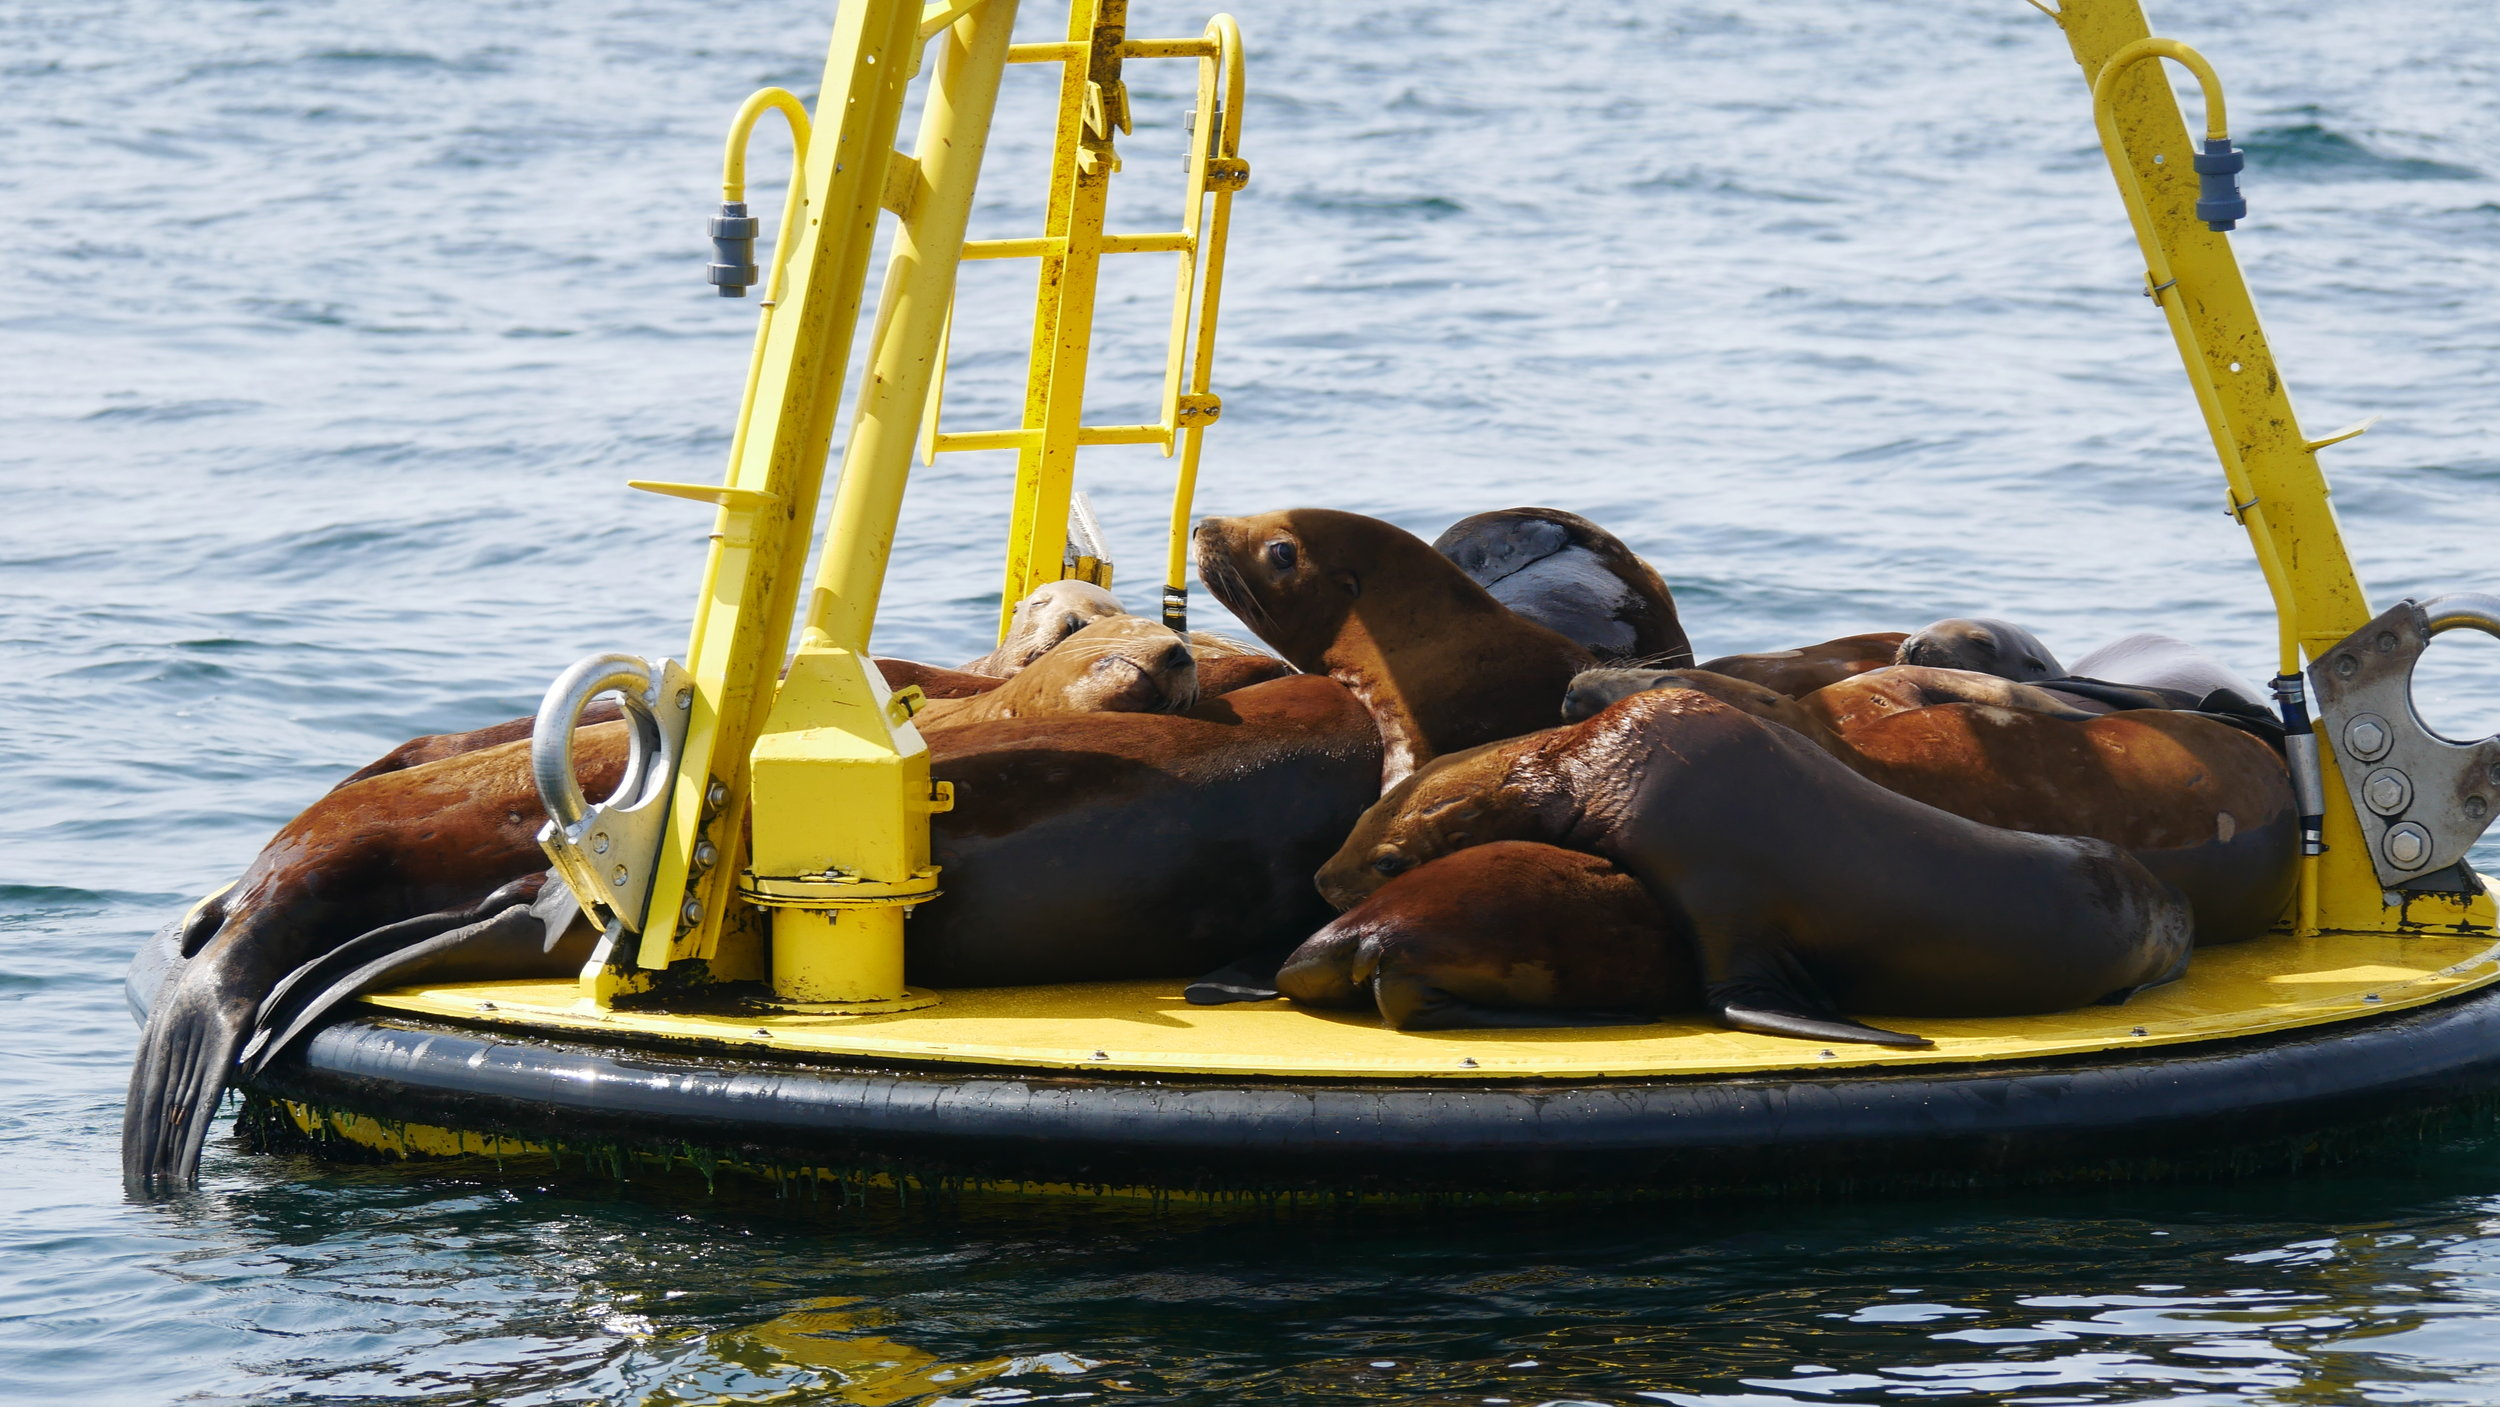 Lazy sea lions in the sun. Photo by Jilann Campbell.